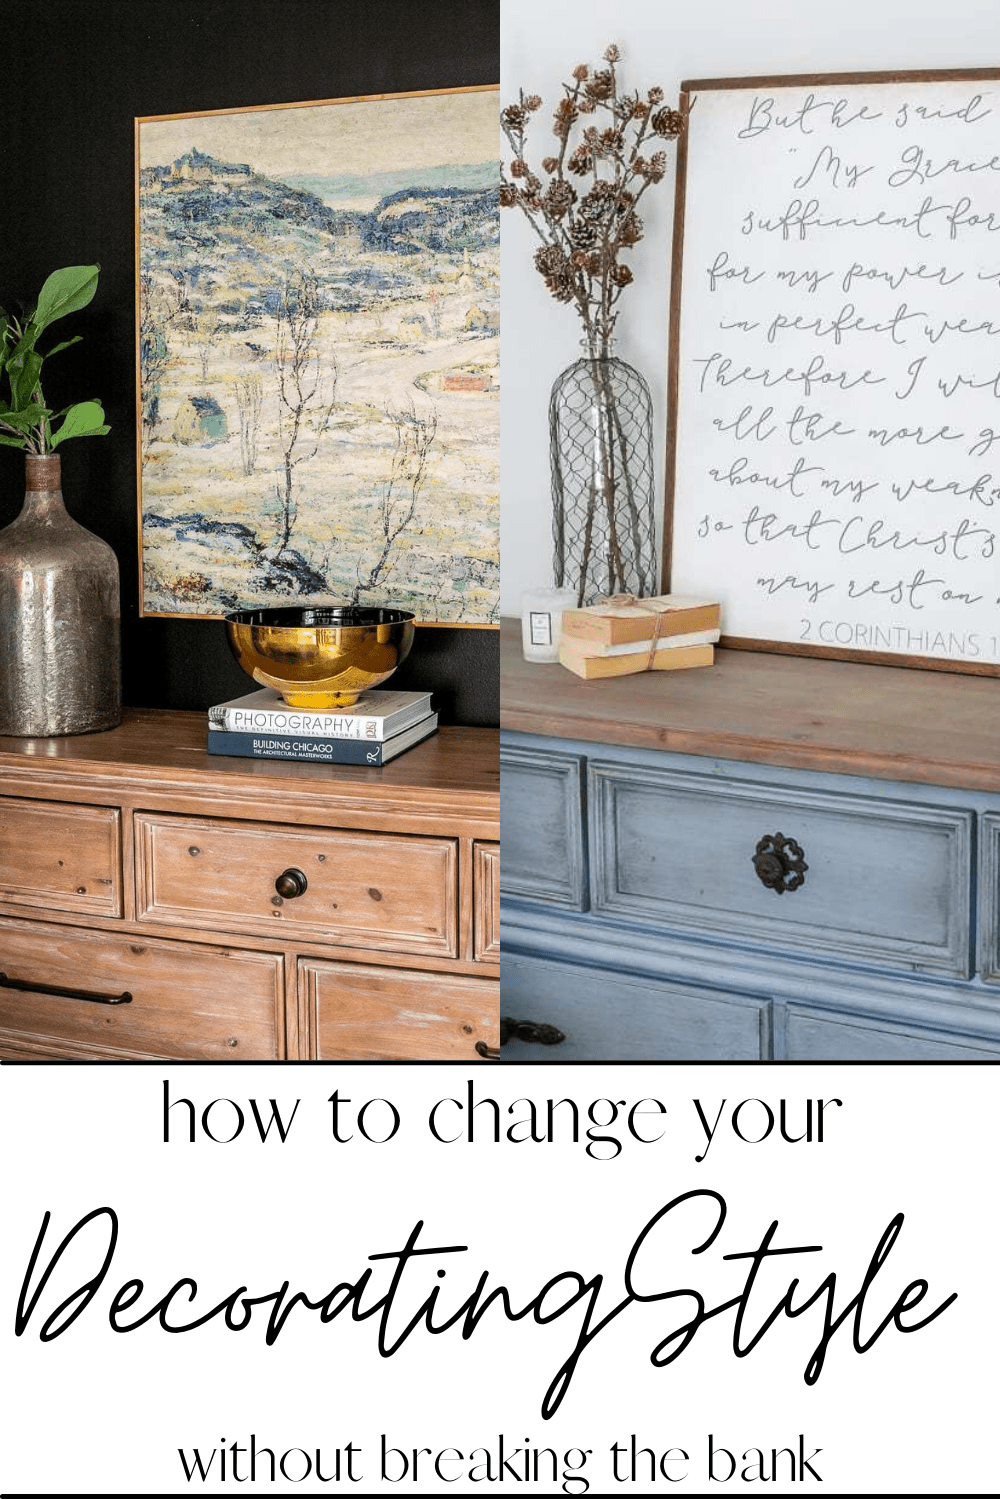 8 steps to transition your decorating style from farmhouse (or any other trend) to a new decorating style without breaking the budget.